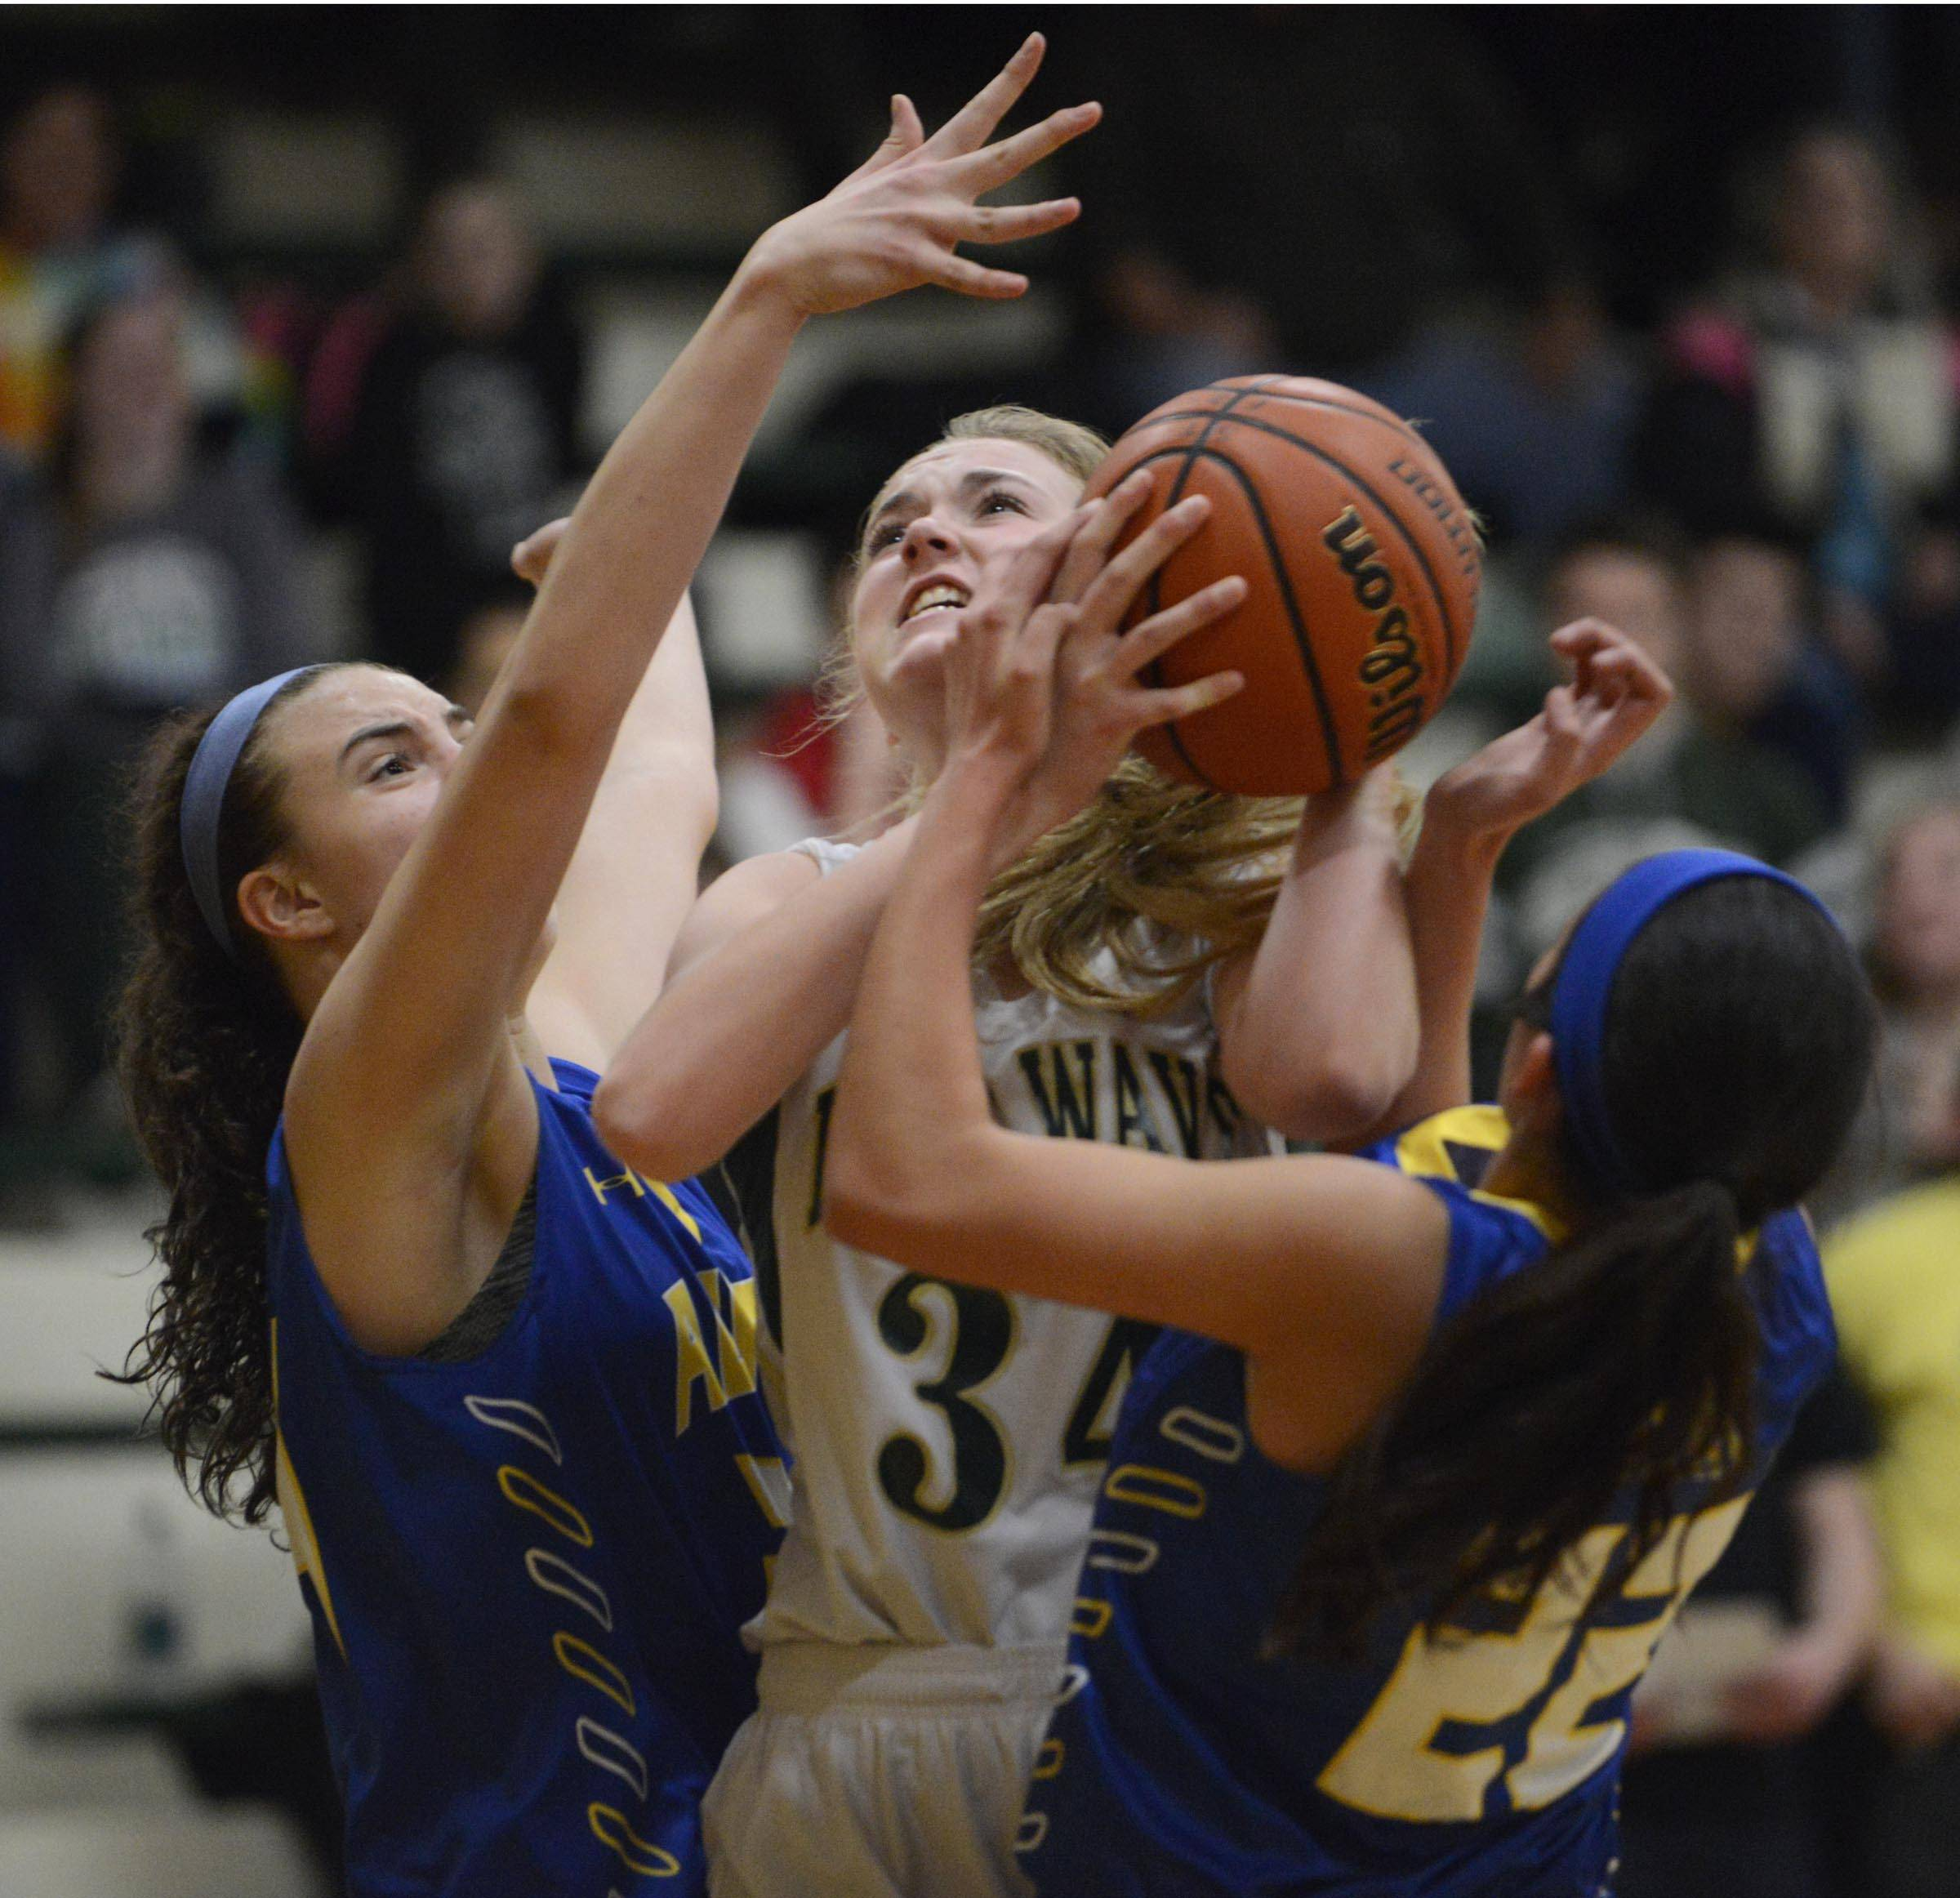 St. Edward's Cece Rapp is double-teamed by Aurora Central Catholic's Sabrina Ganofsky and Veronica Lavia, right.